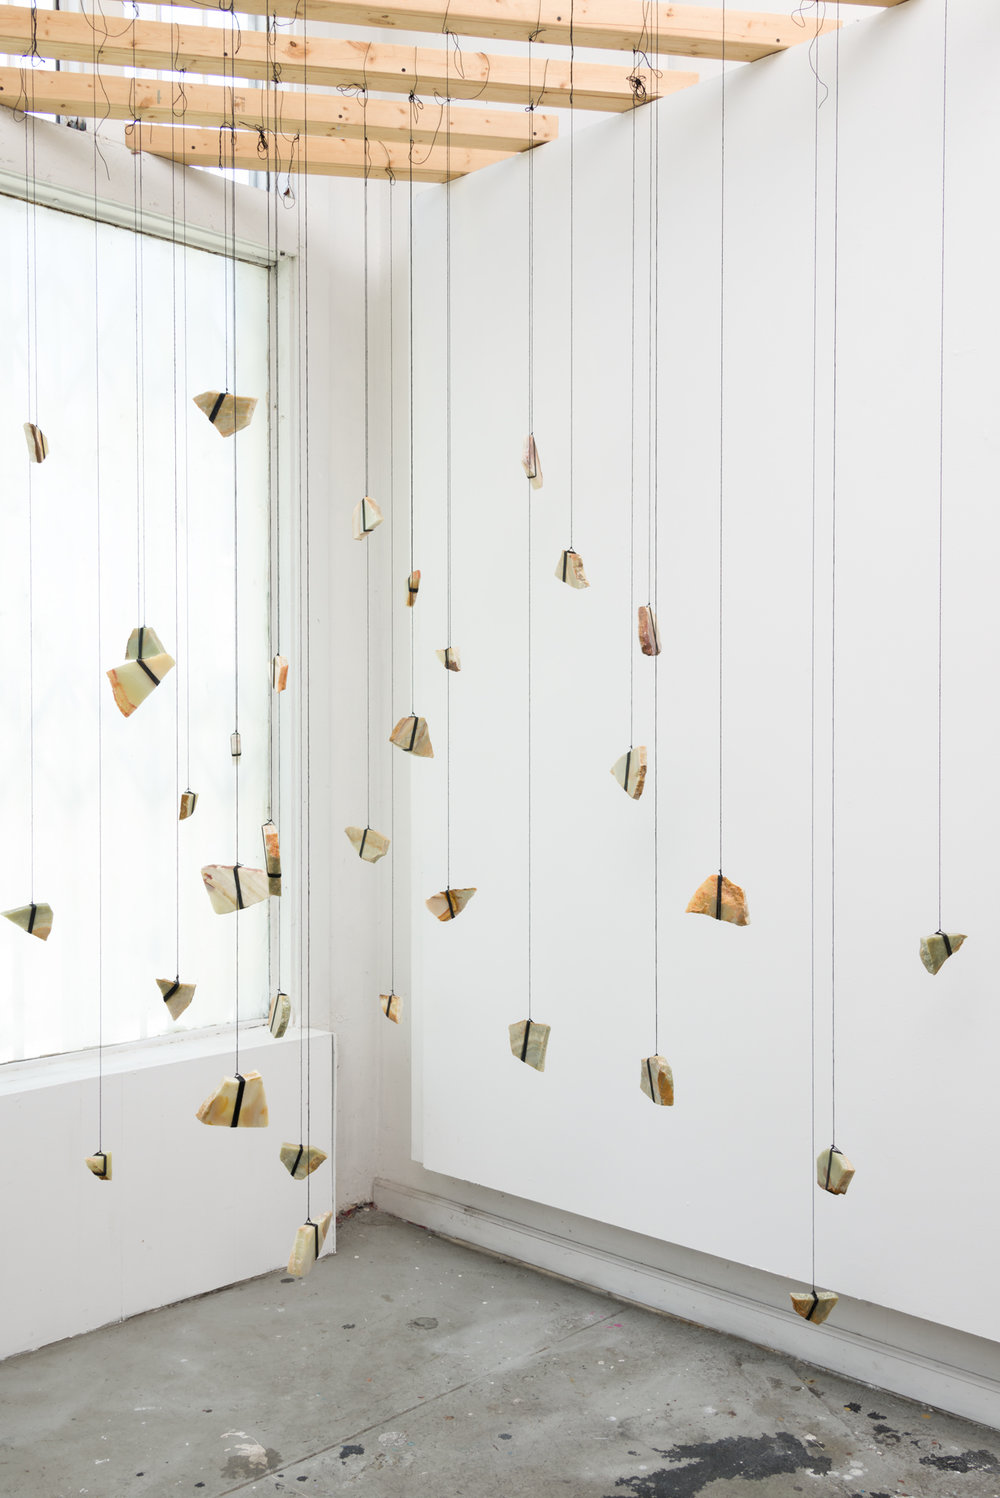 Butterfly Double (Installation View), 2016